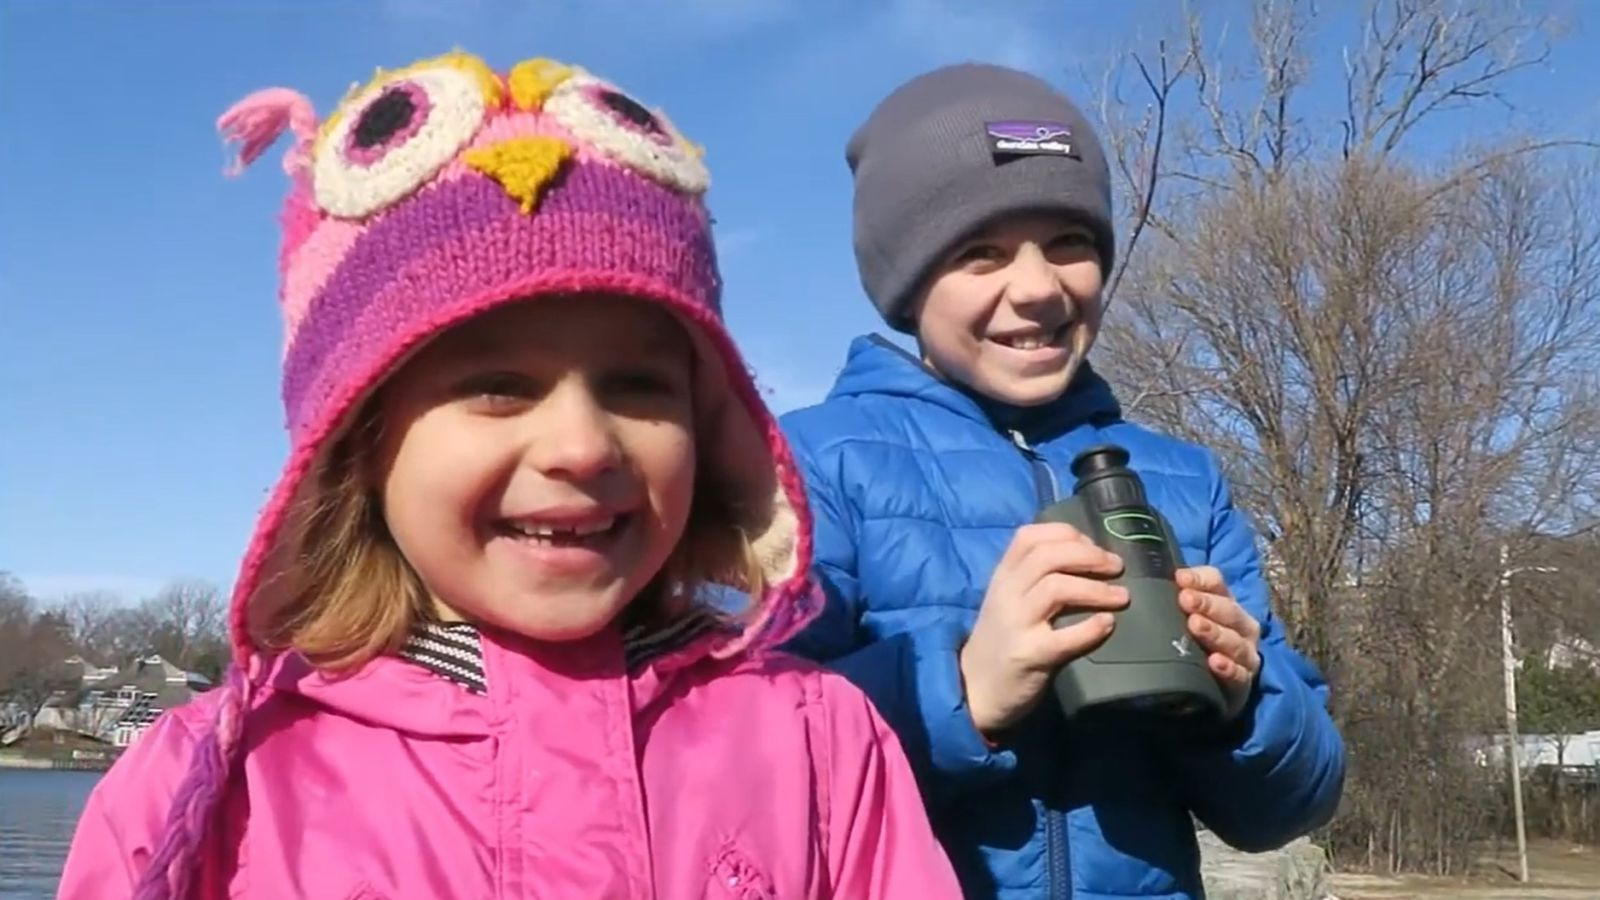 James Lees took his children, Benjamin and Iona, outdoors to test the SWAROVSKI OPTIK dG in the field. Find out more about their joint adventure.